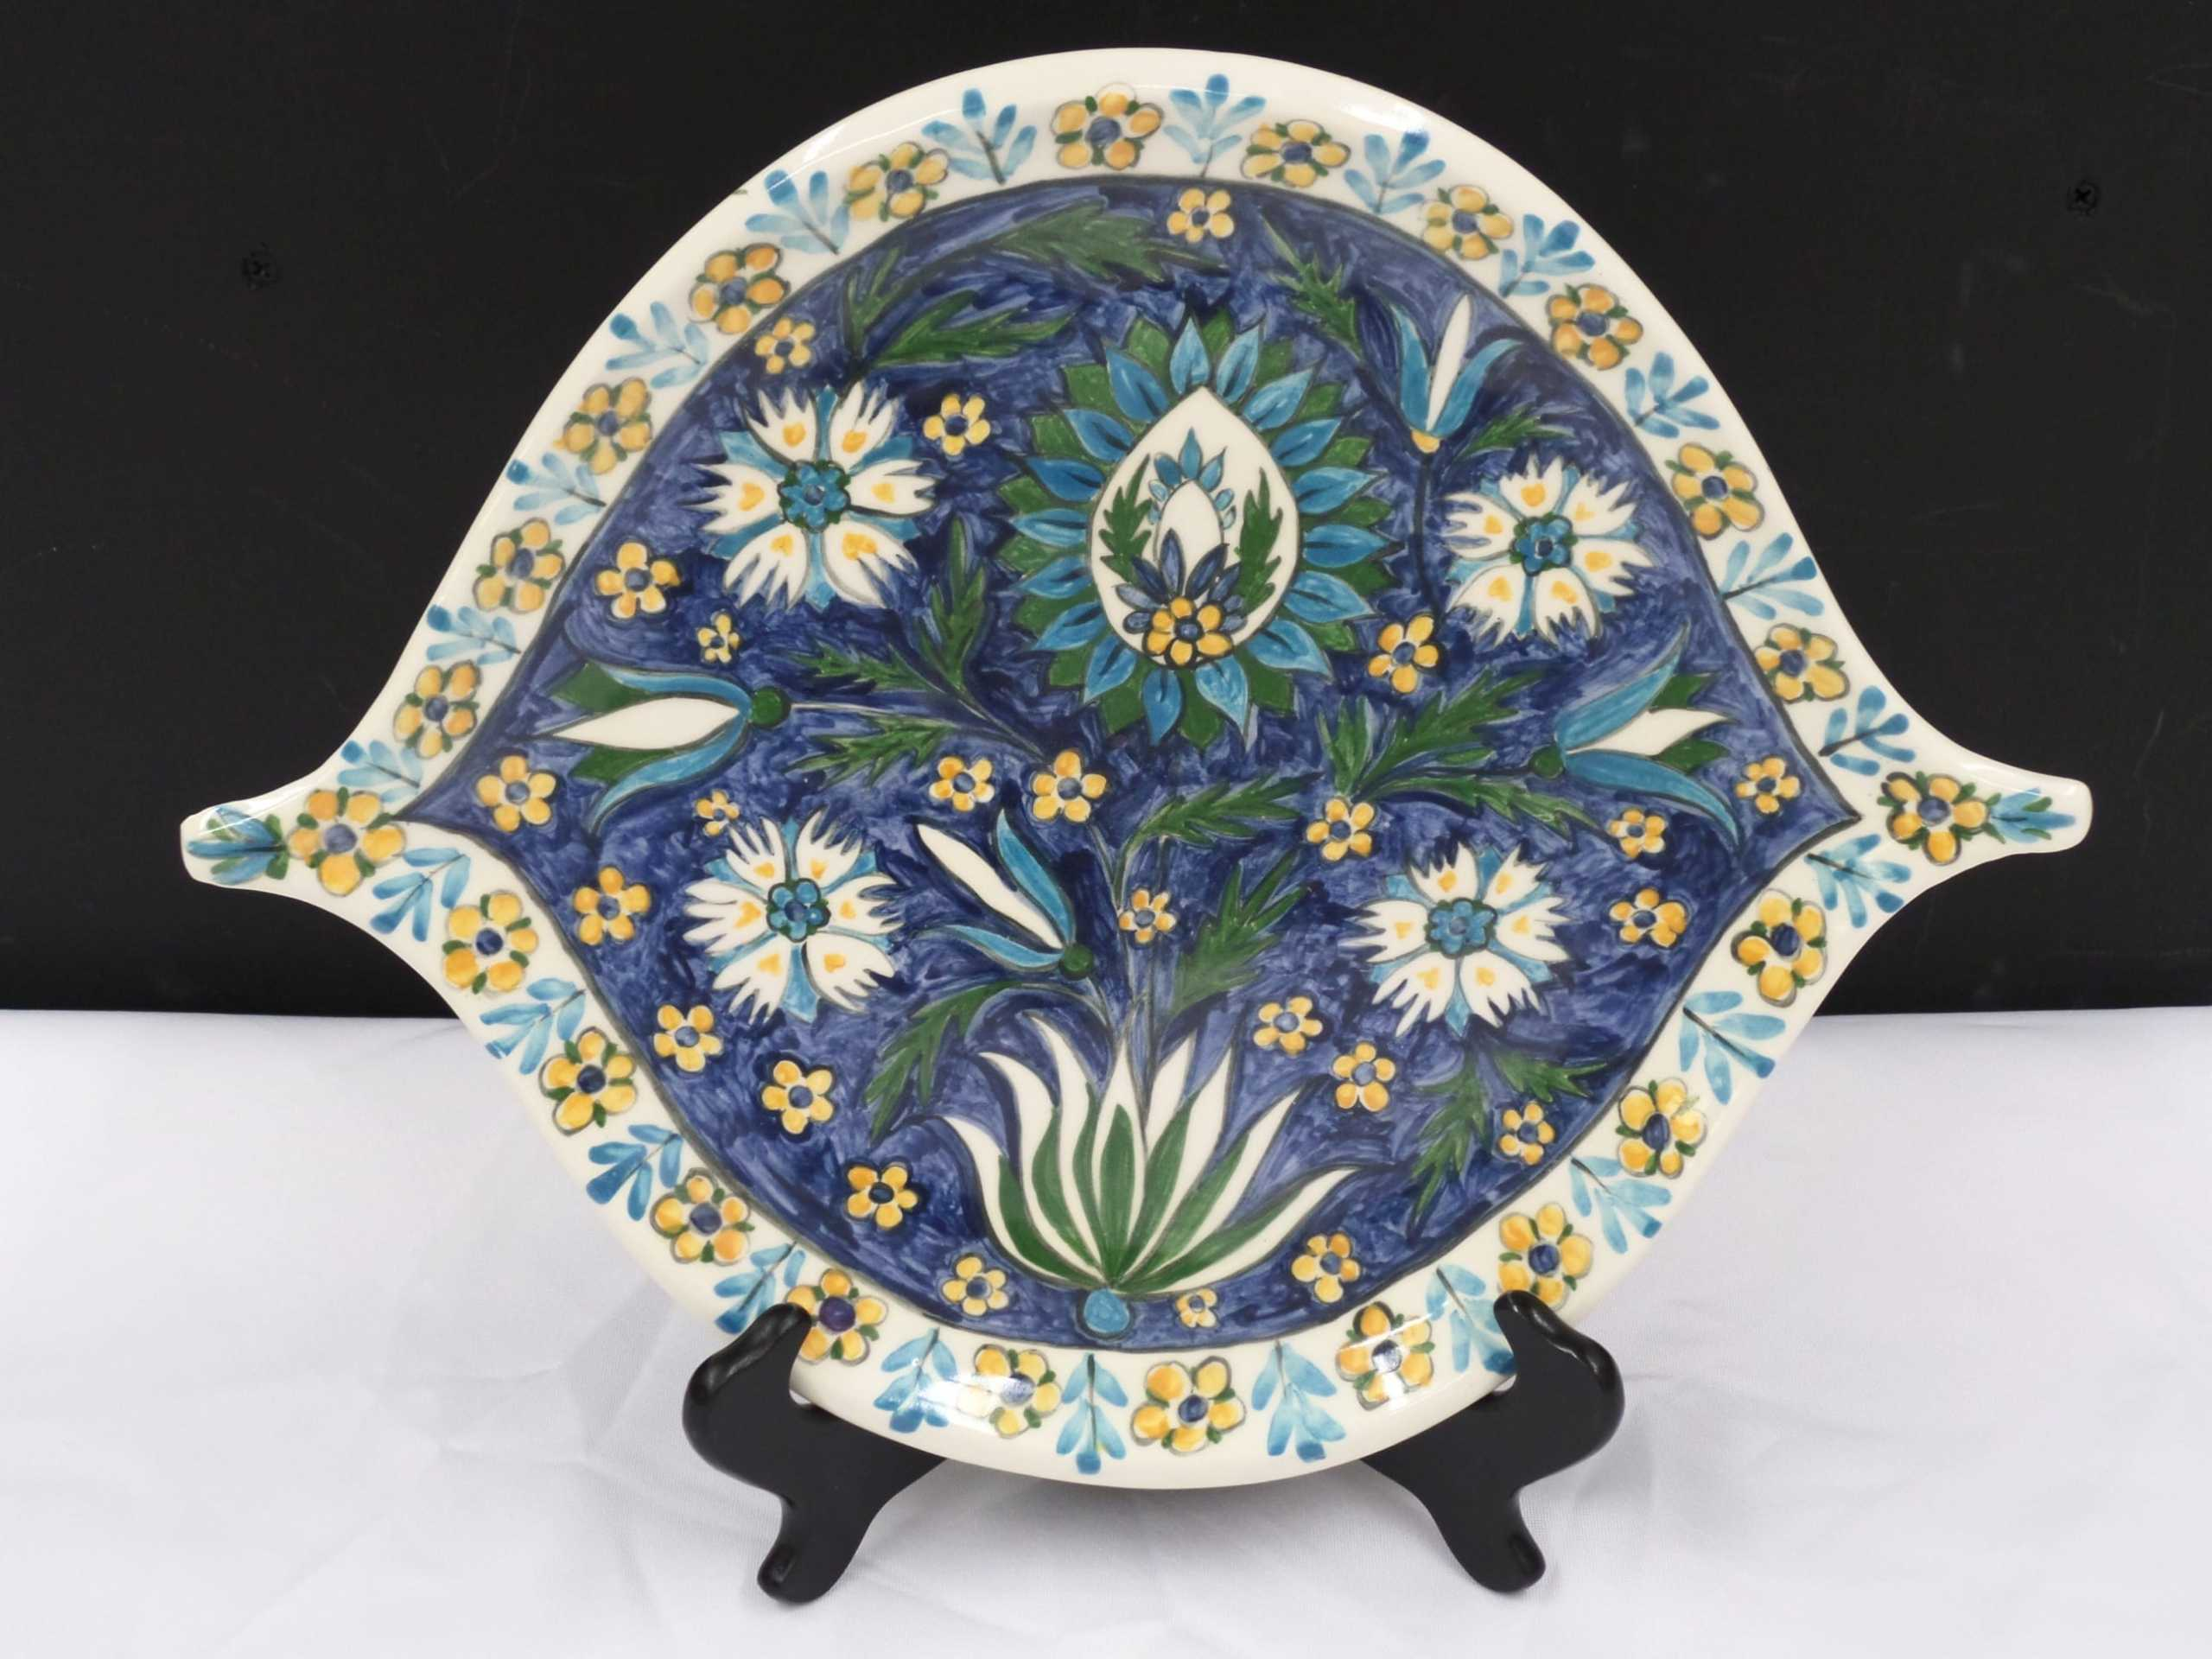 11″ FLORAL CERAMIC PLATE <br/> Donated by: ARTIST URSULA MICKLE <br/> Valued at: $80 1